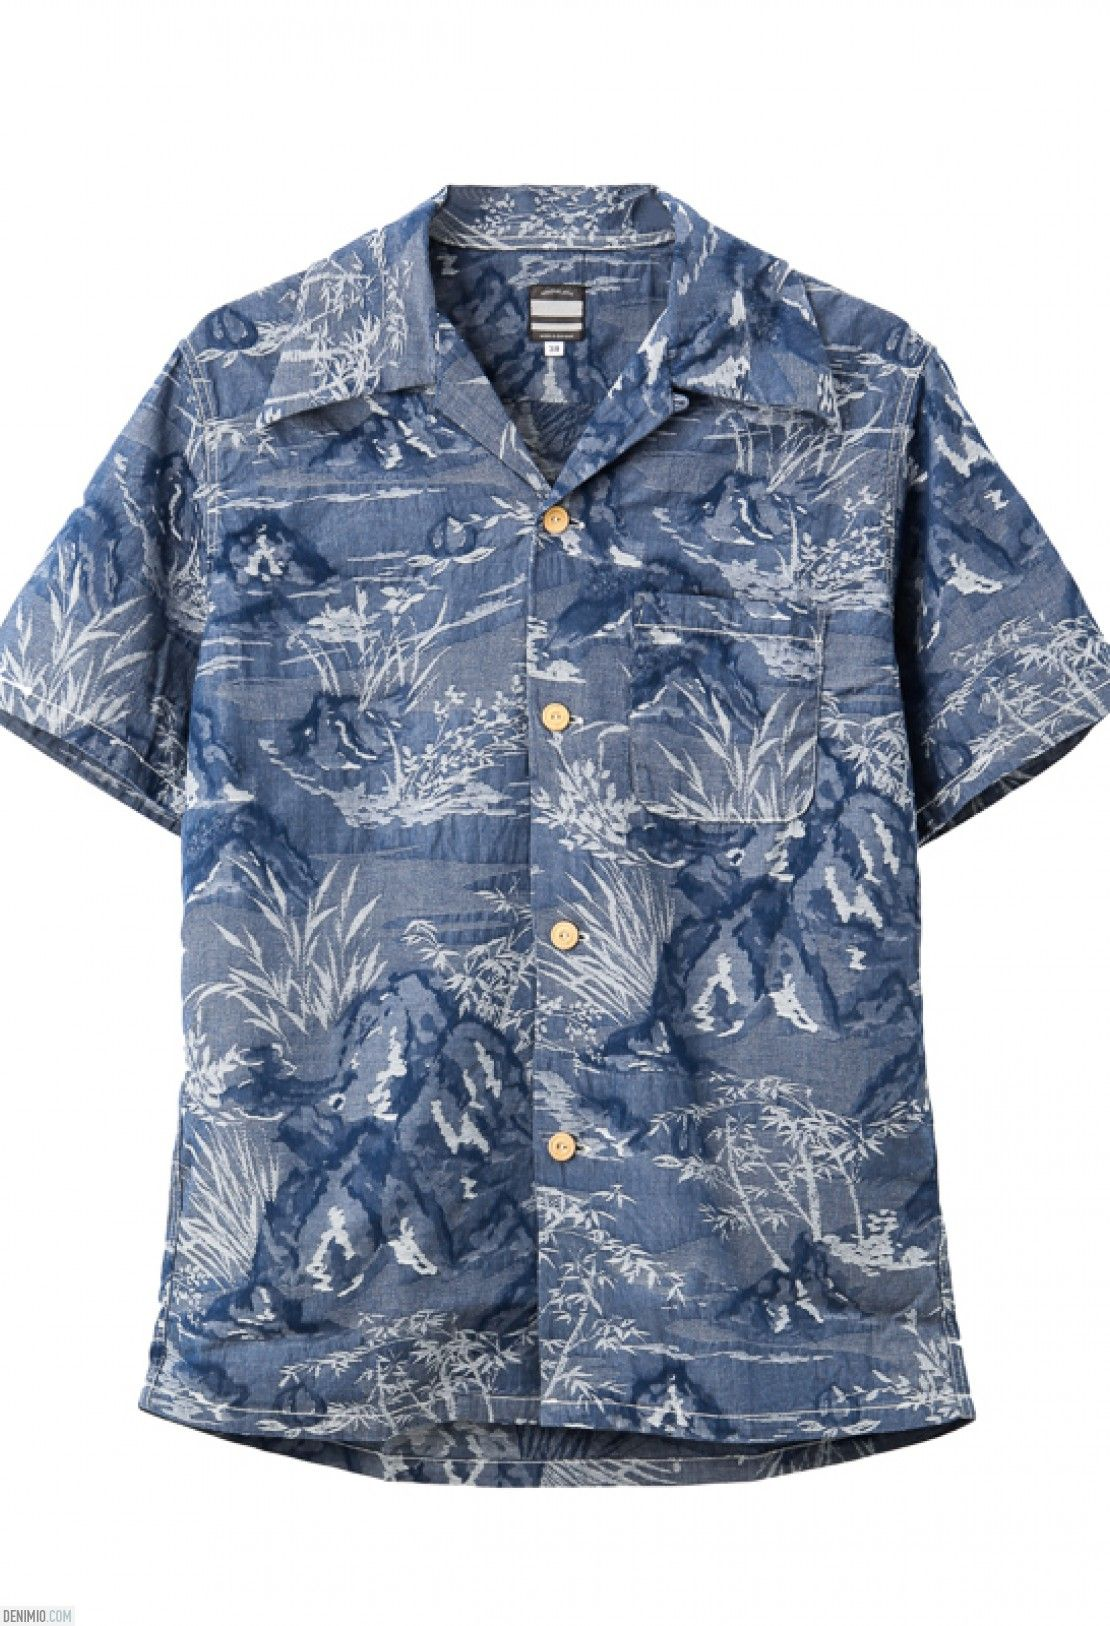 Margitaville T Shirt Blue The BBQ Shirt Size XXL 100/% Cotton Hawaiian